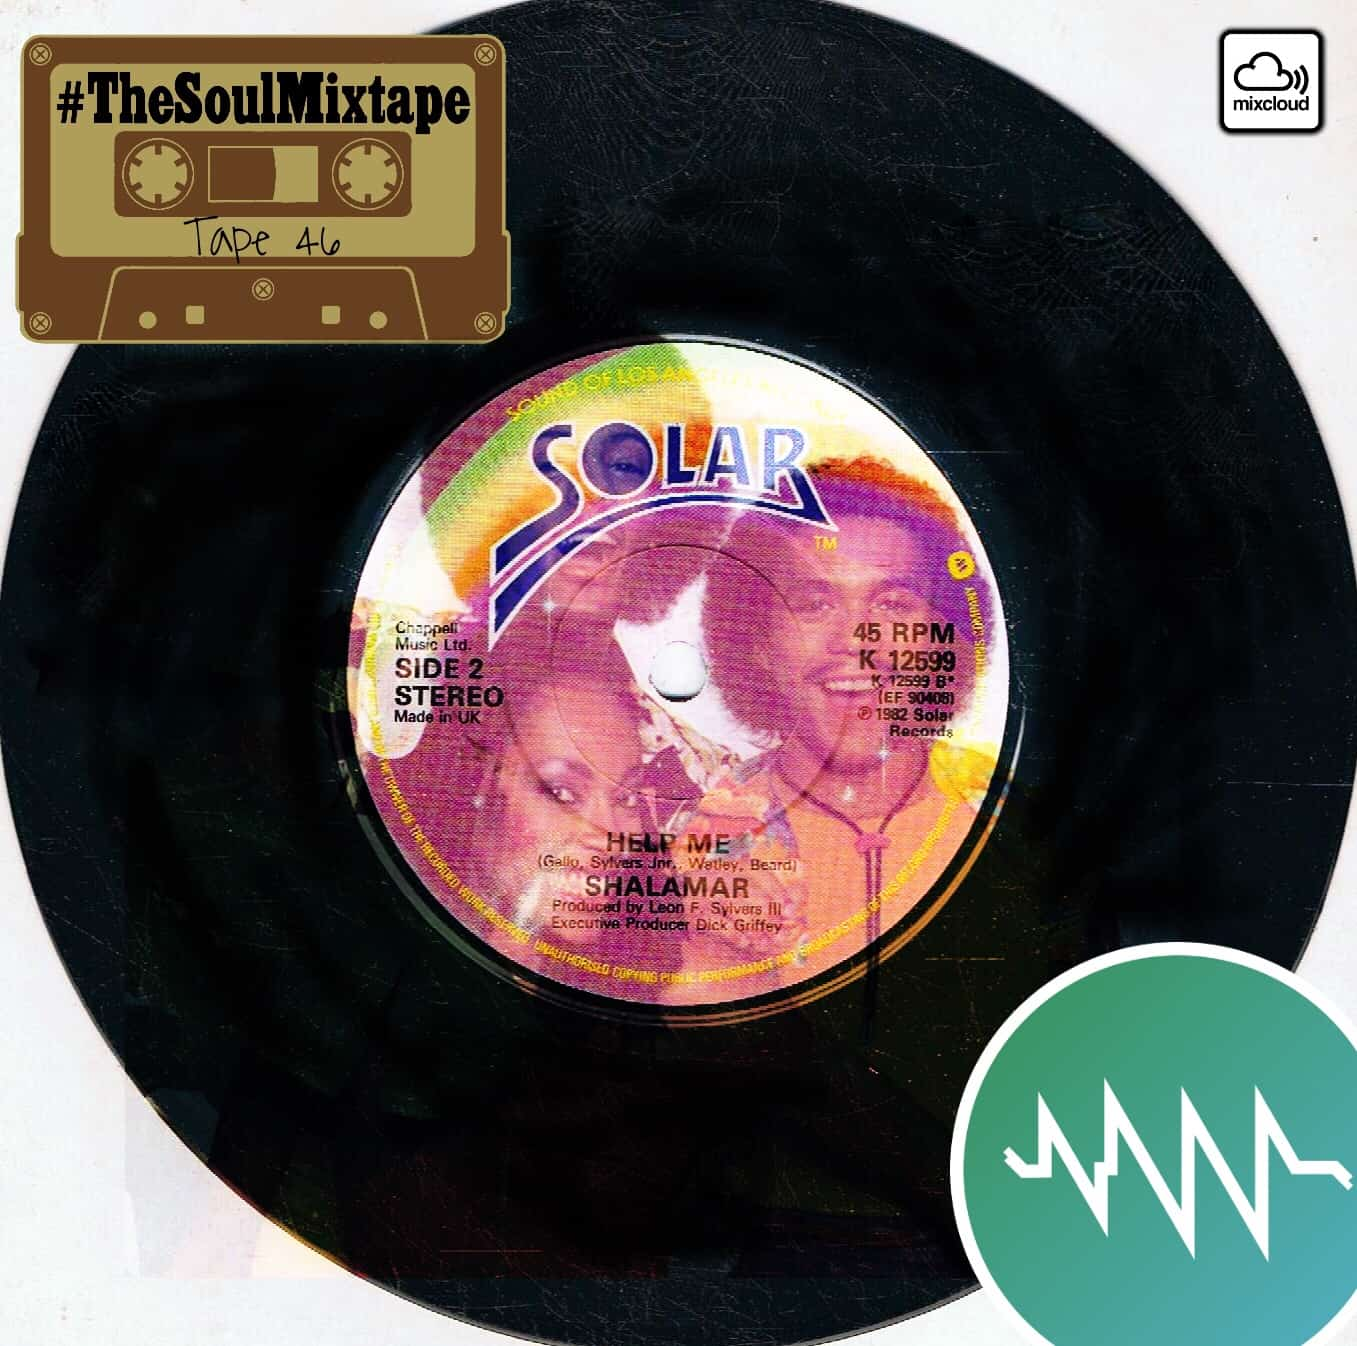 NUWAVERADIO PRESENTS #THESOULMIXTAPE NO.47